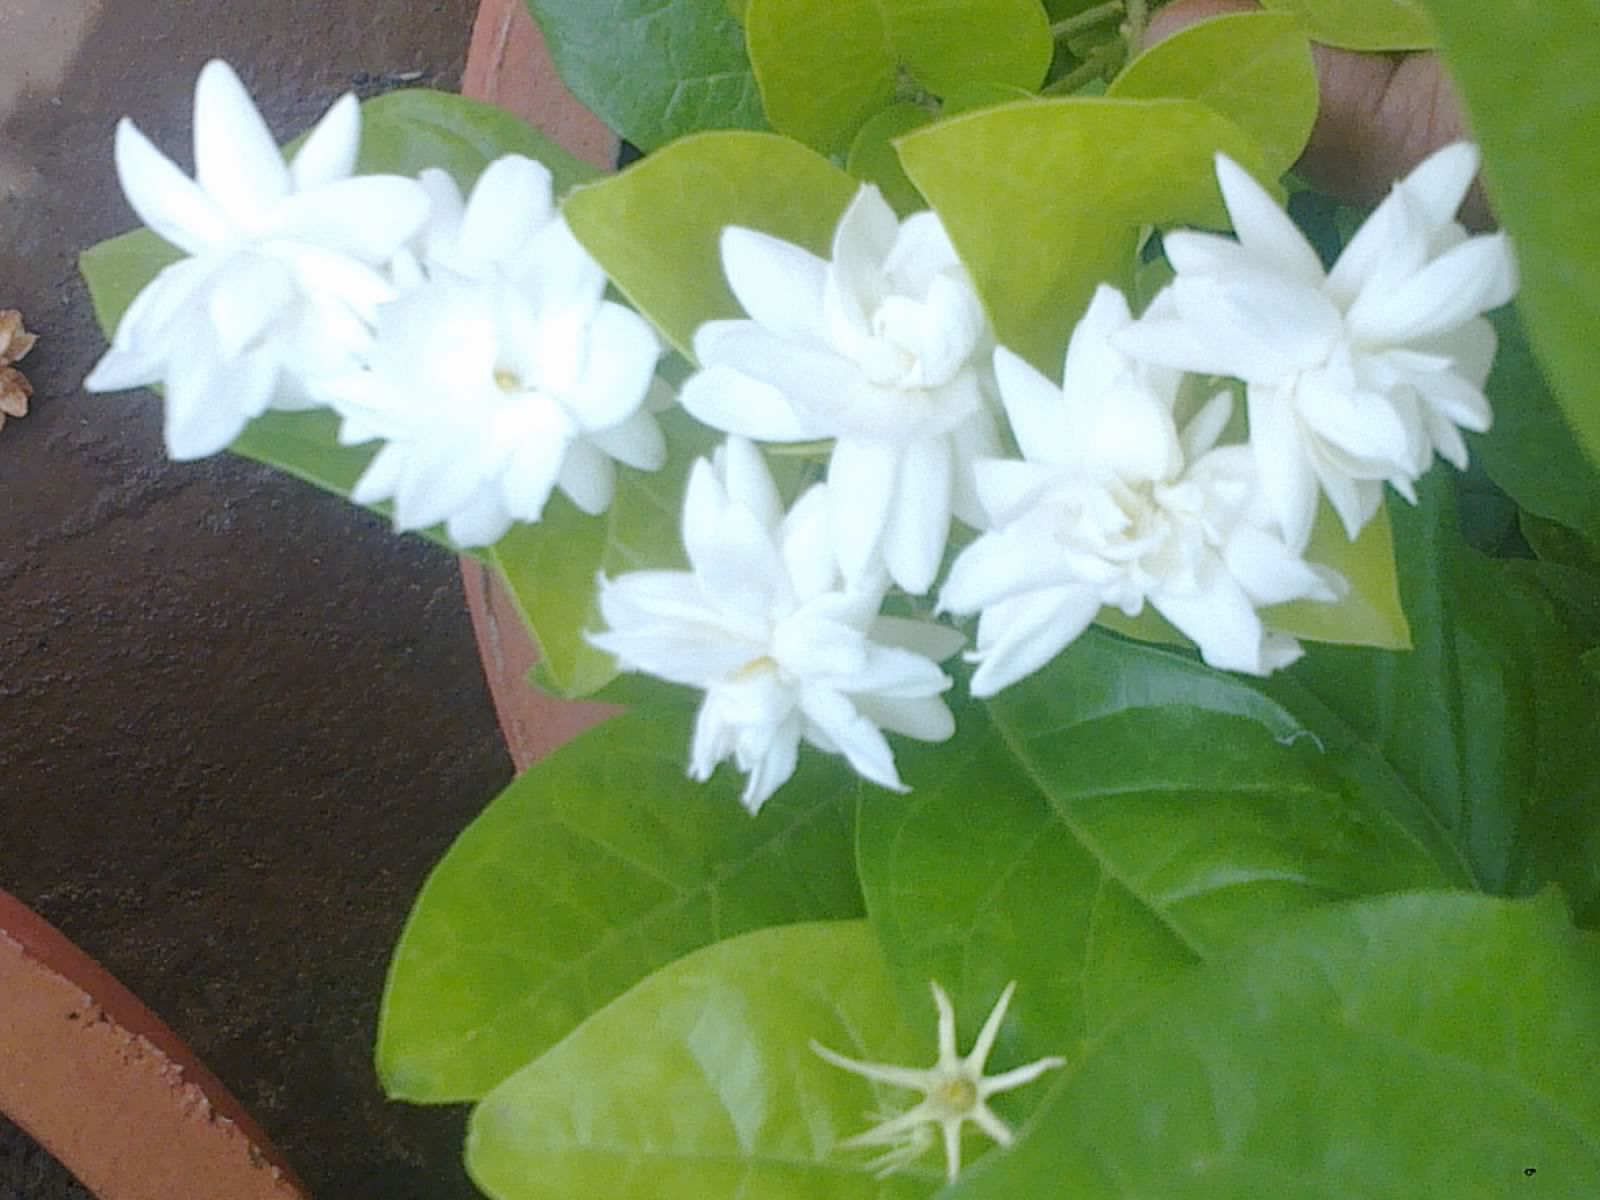 Plants growing in my potted garden arabian jasmine blooms close up photo of arabian jasmine cluster izmirmasajfo